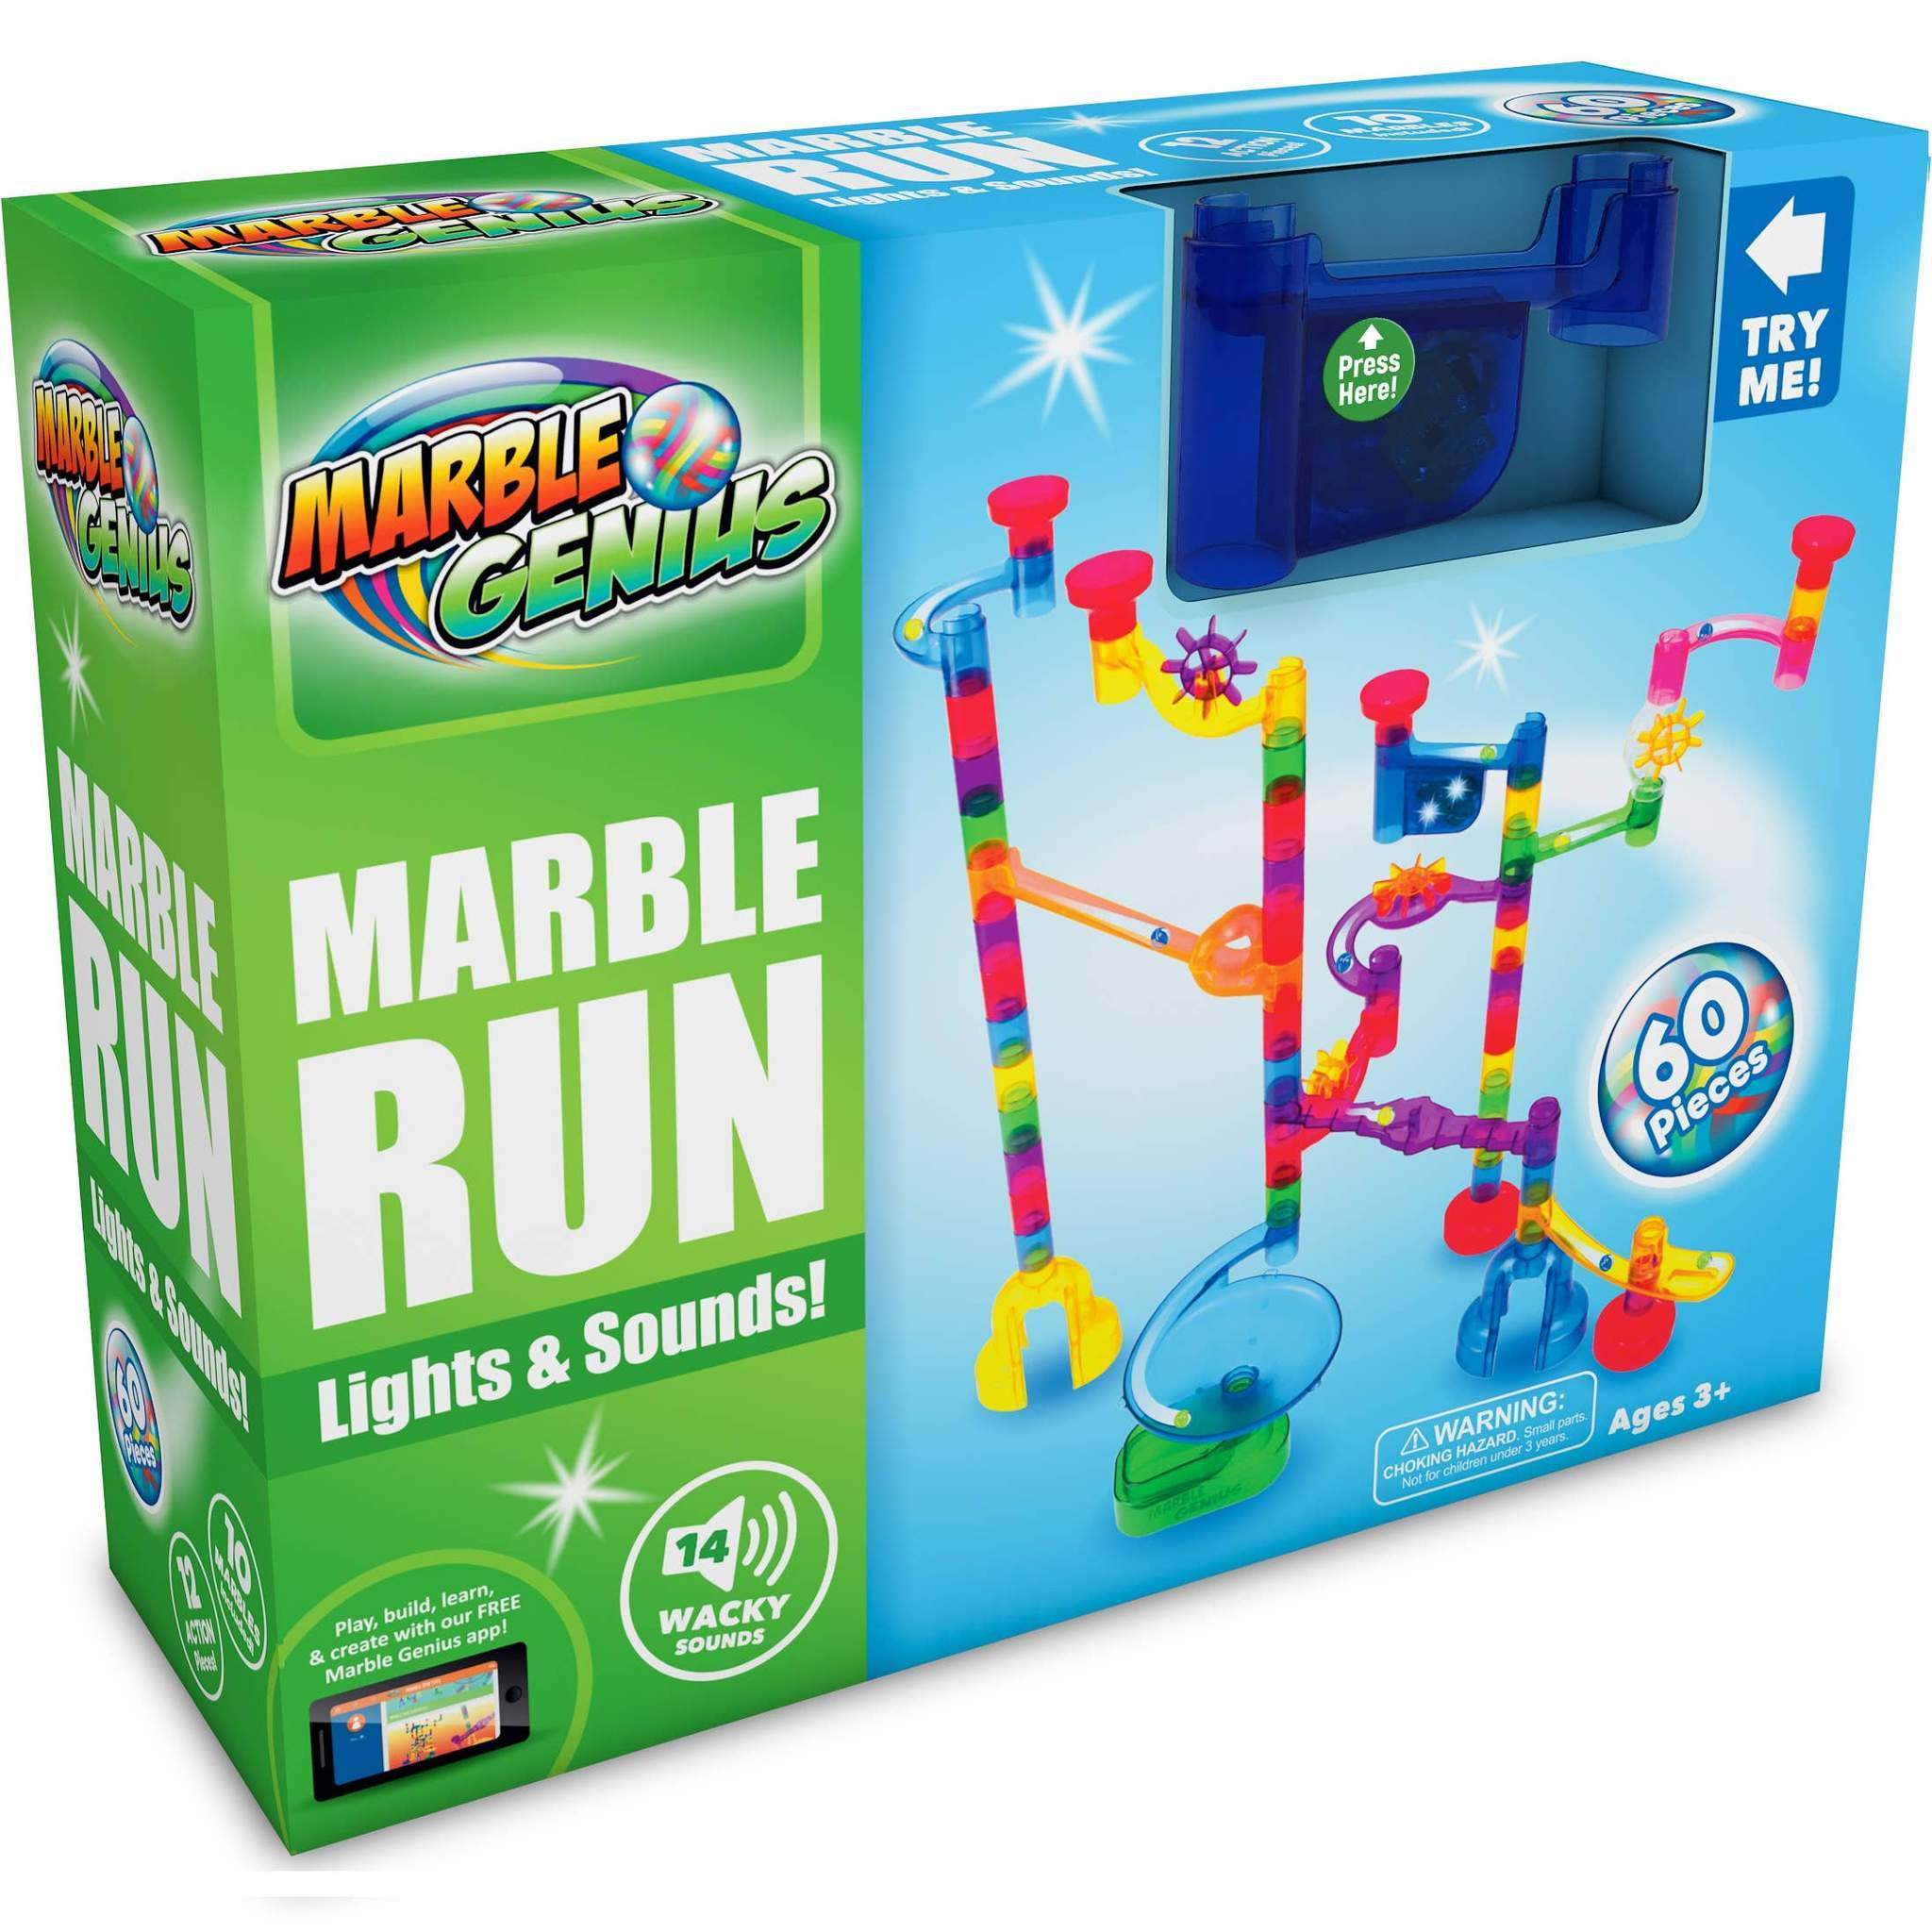 Marble Genius Marble Run Wacky Lights